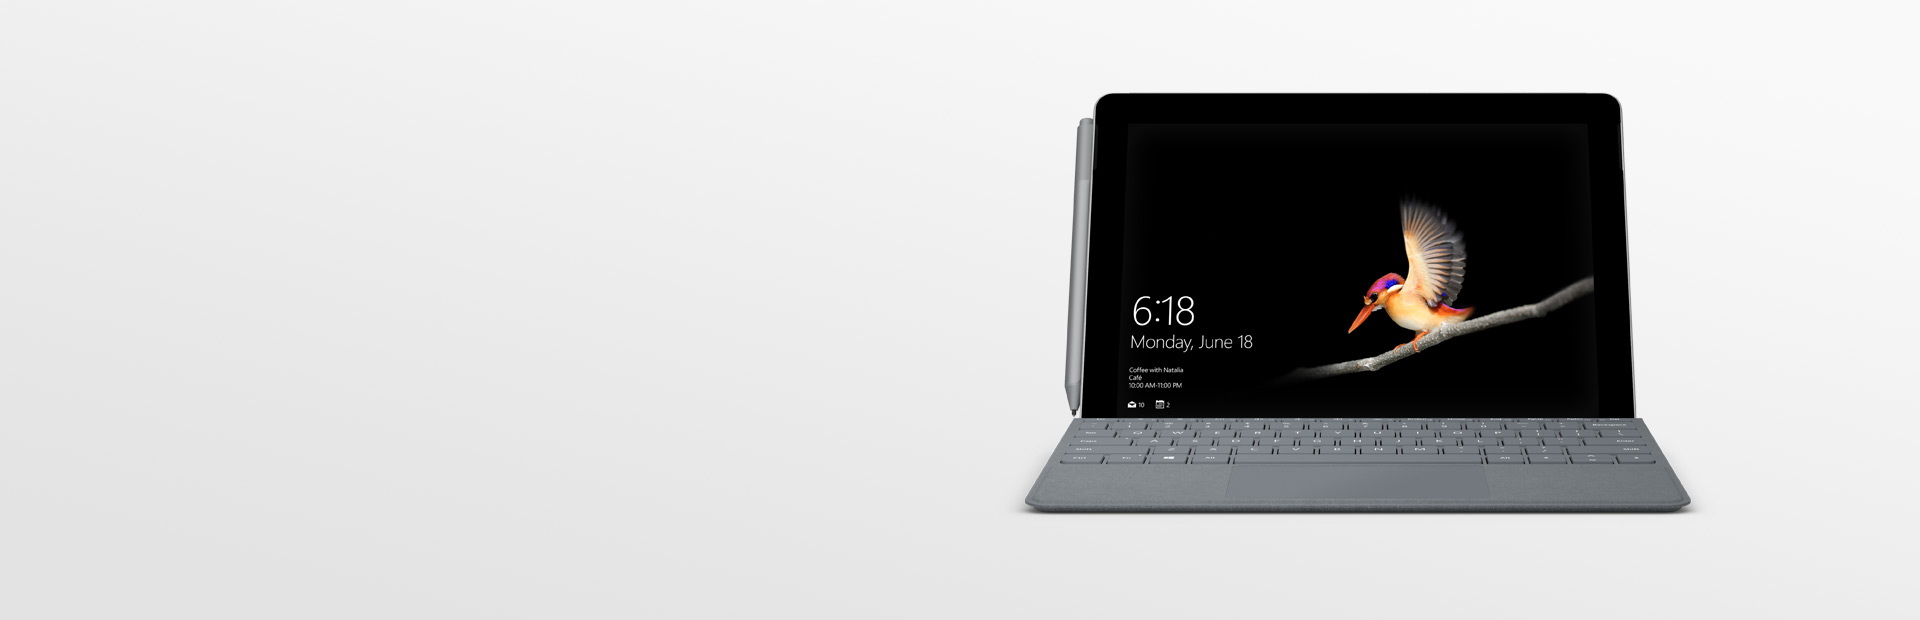 Surface Go ja Surface-kynä